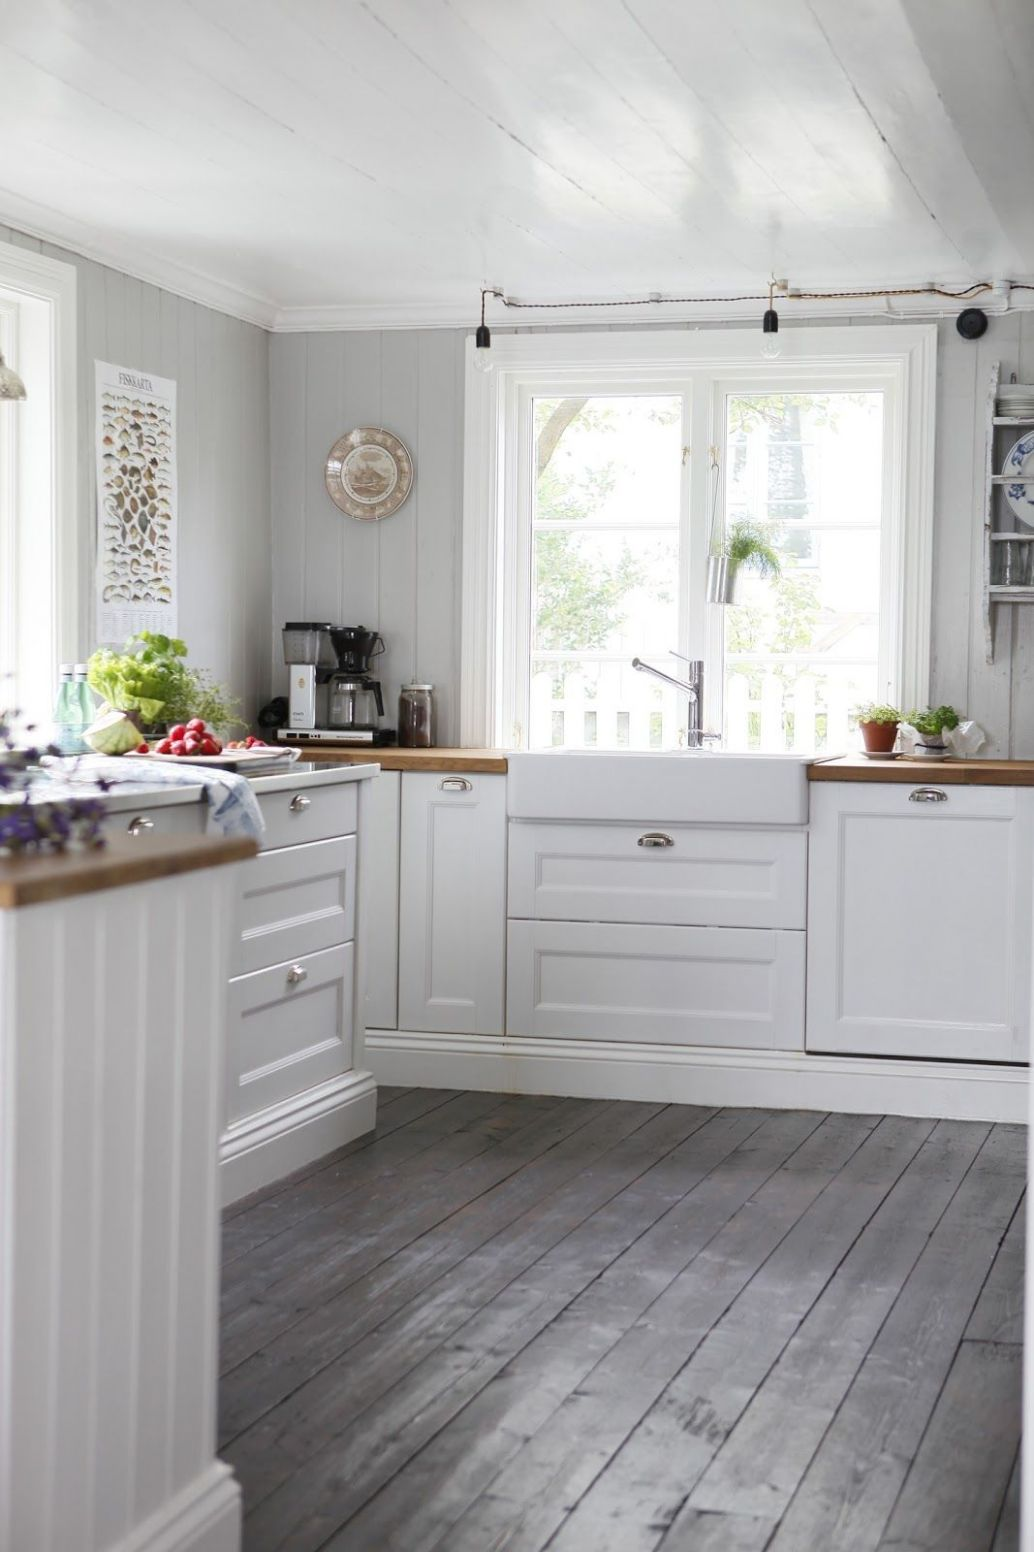 Pin by marilyn colin on kitchens in 10 | Grey kitchen floor ...